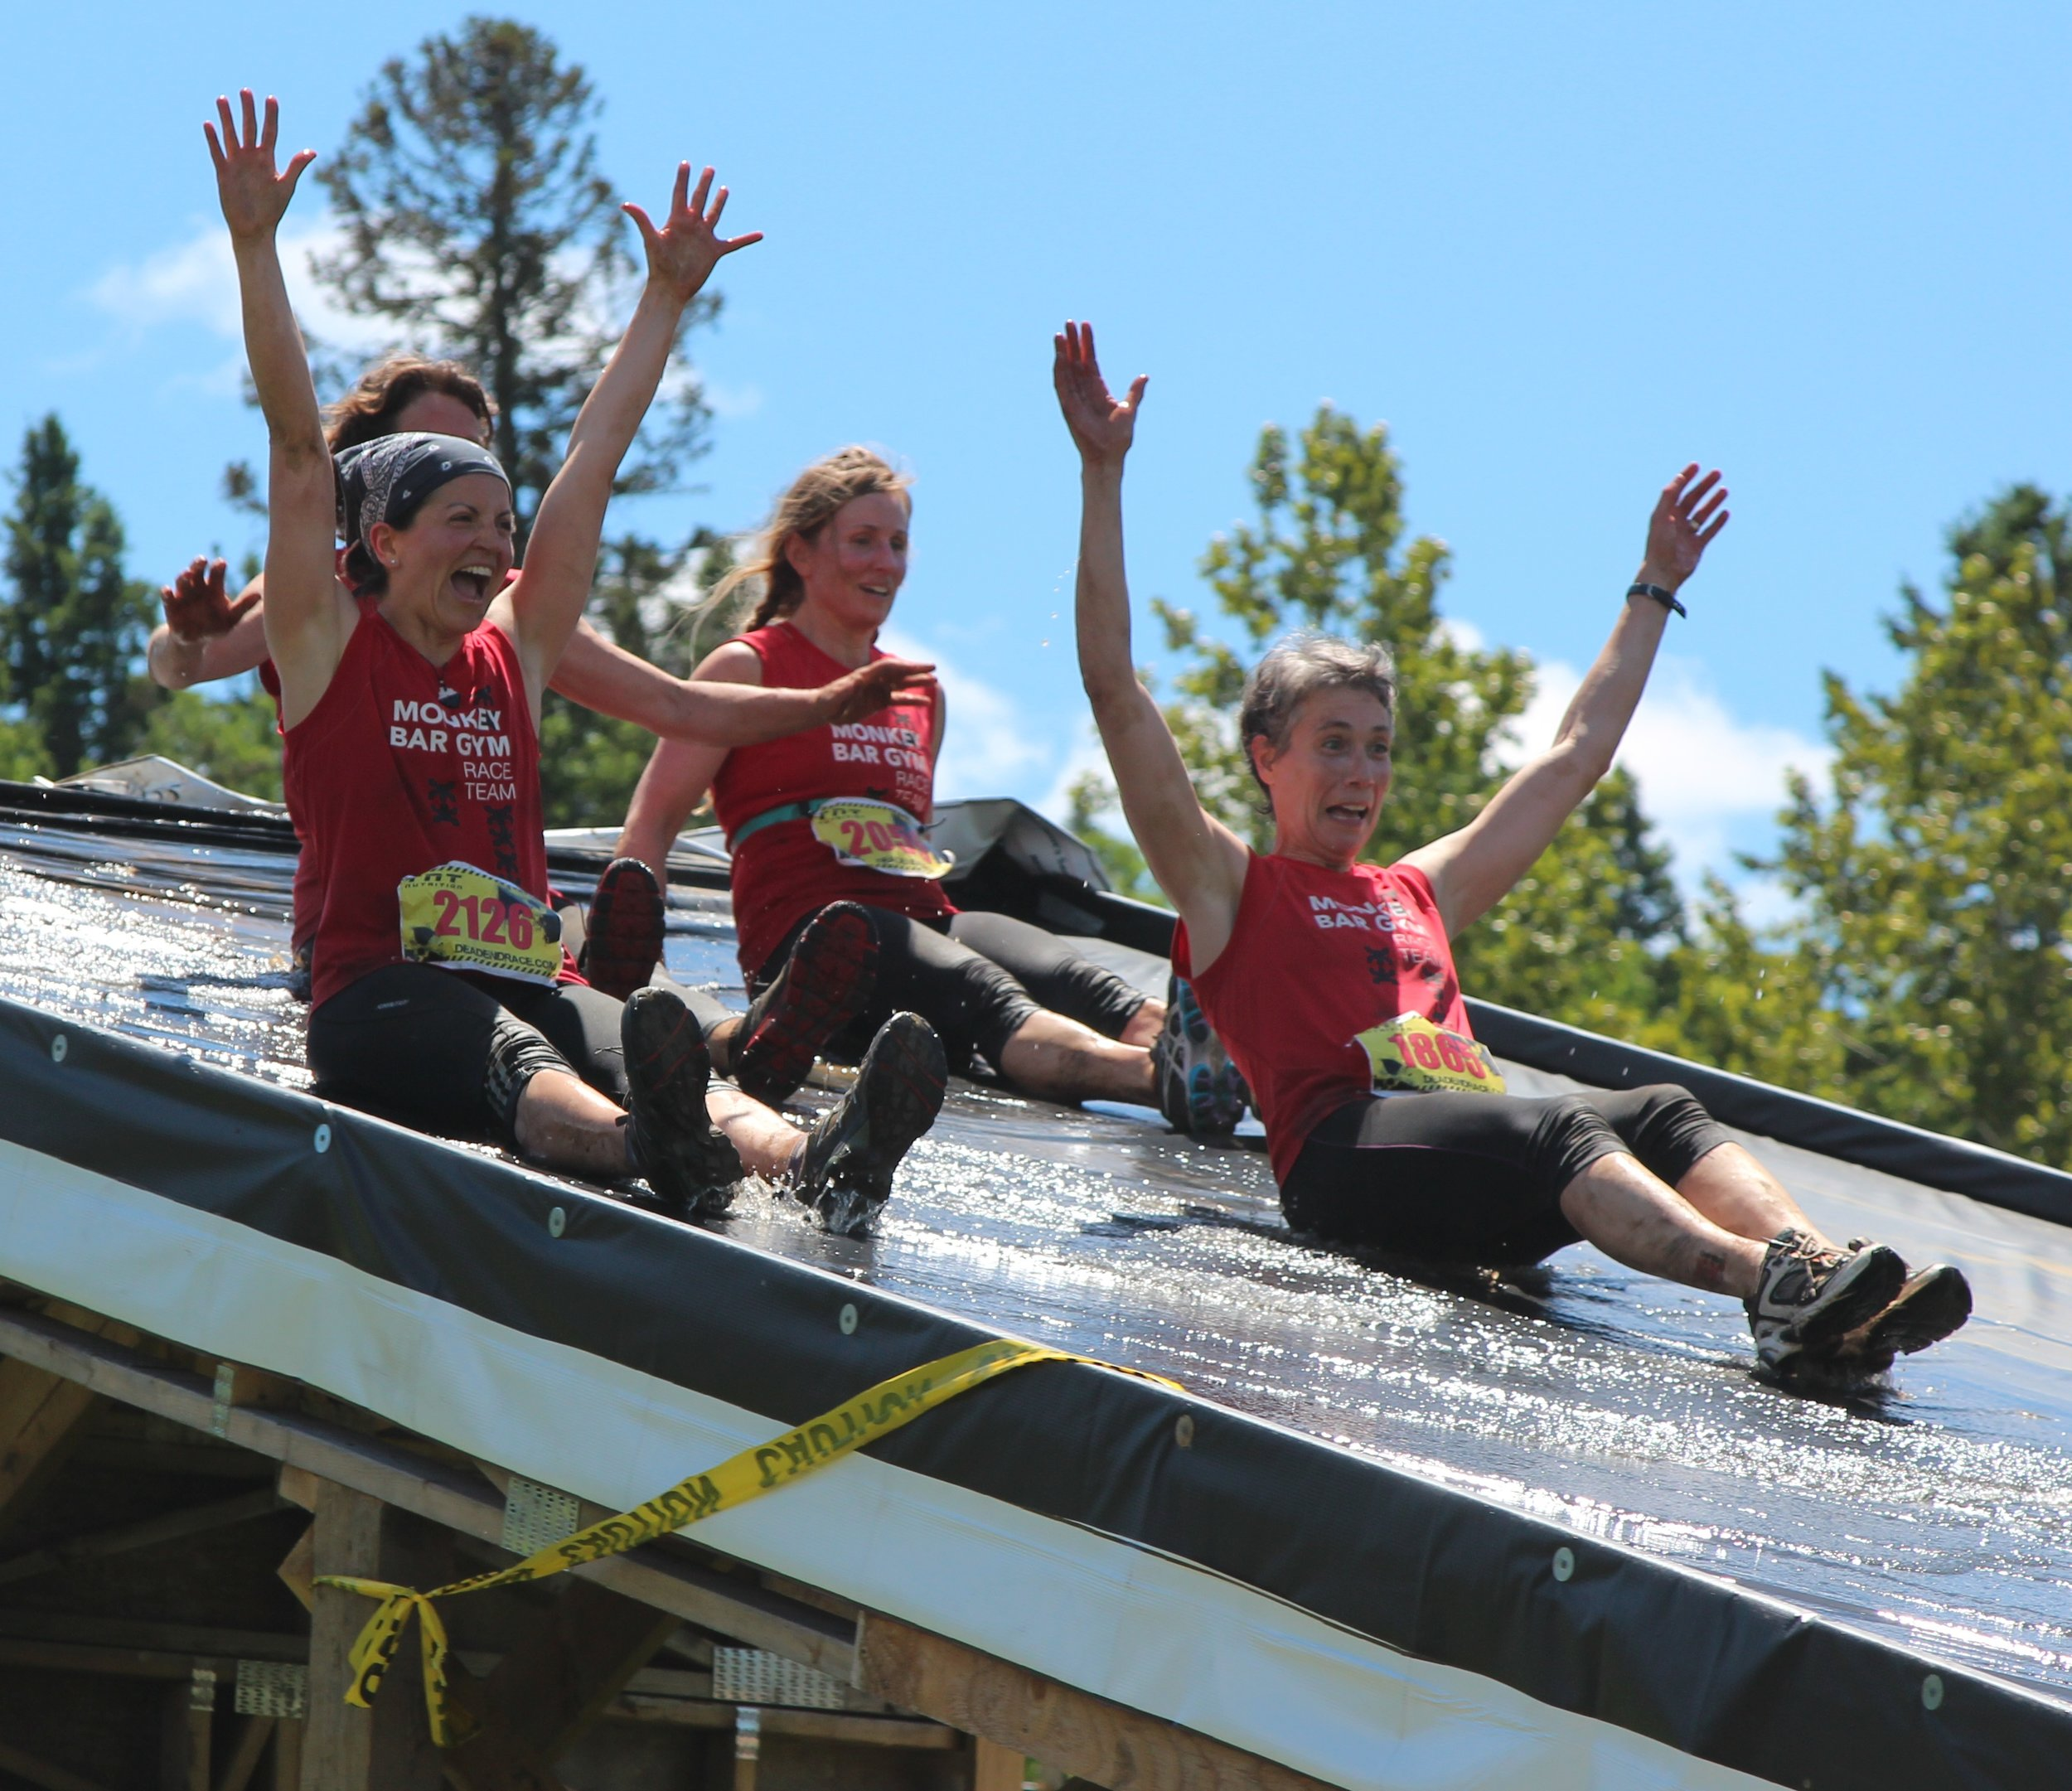 Strong women having fun at a obstacle race event.